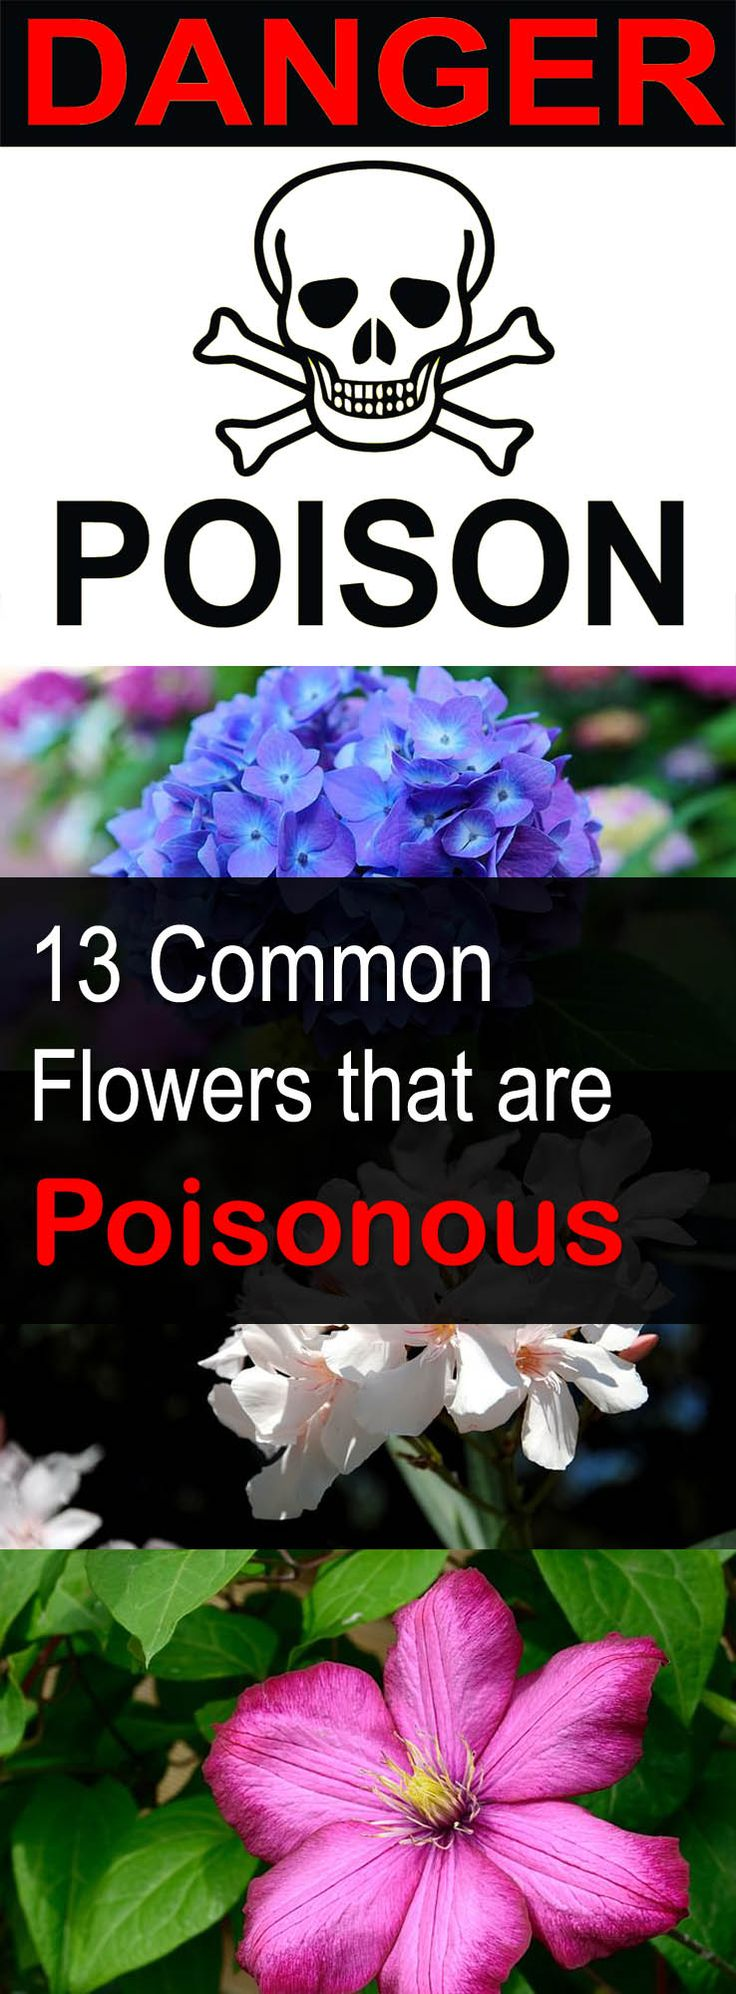 13 very common and popular Flowers that are Poisonous.  Every gardener should know about these toxic flowers.